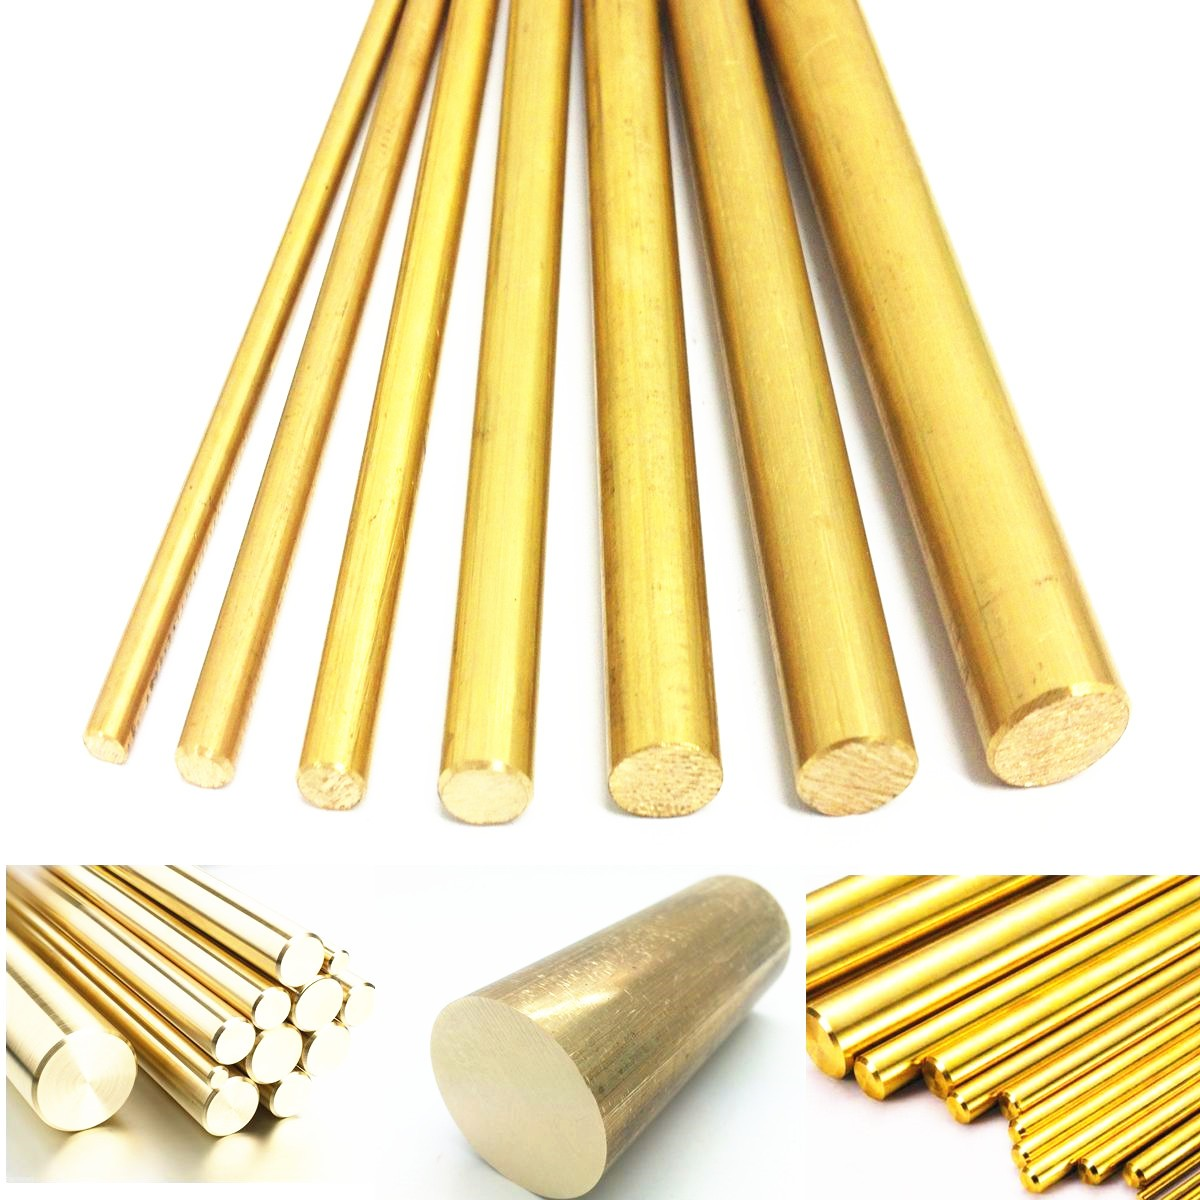 8mm Diameter 100/200/330/500mm Brass Round Bar Rod Circular Tube